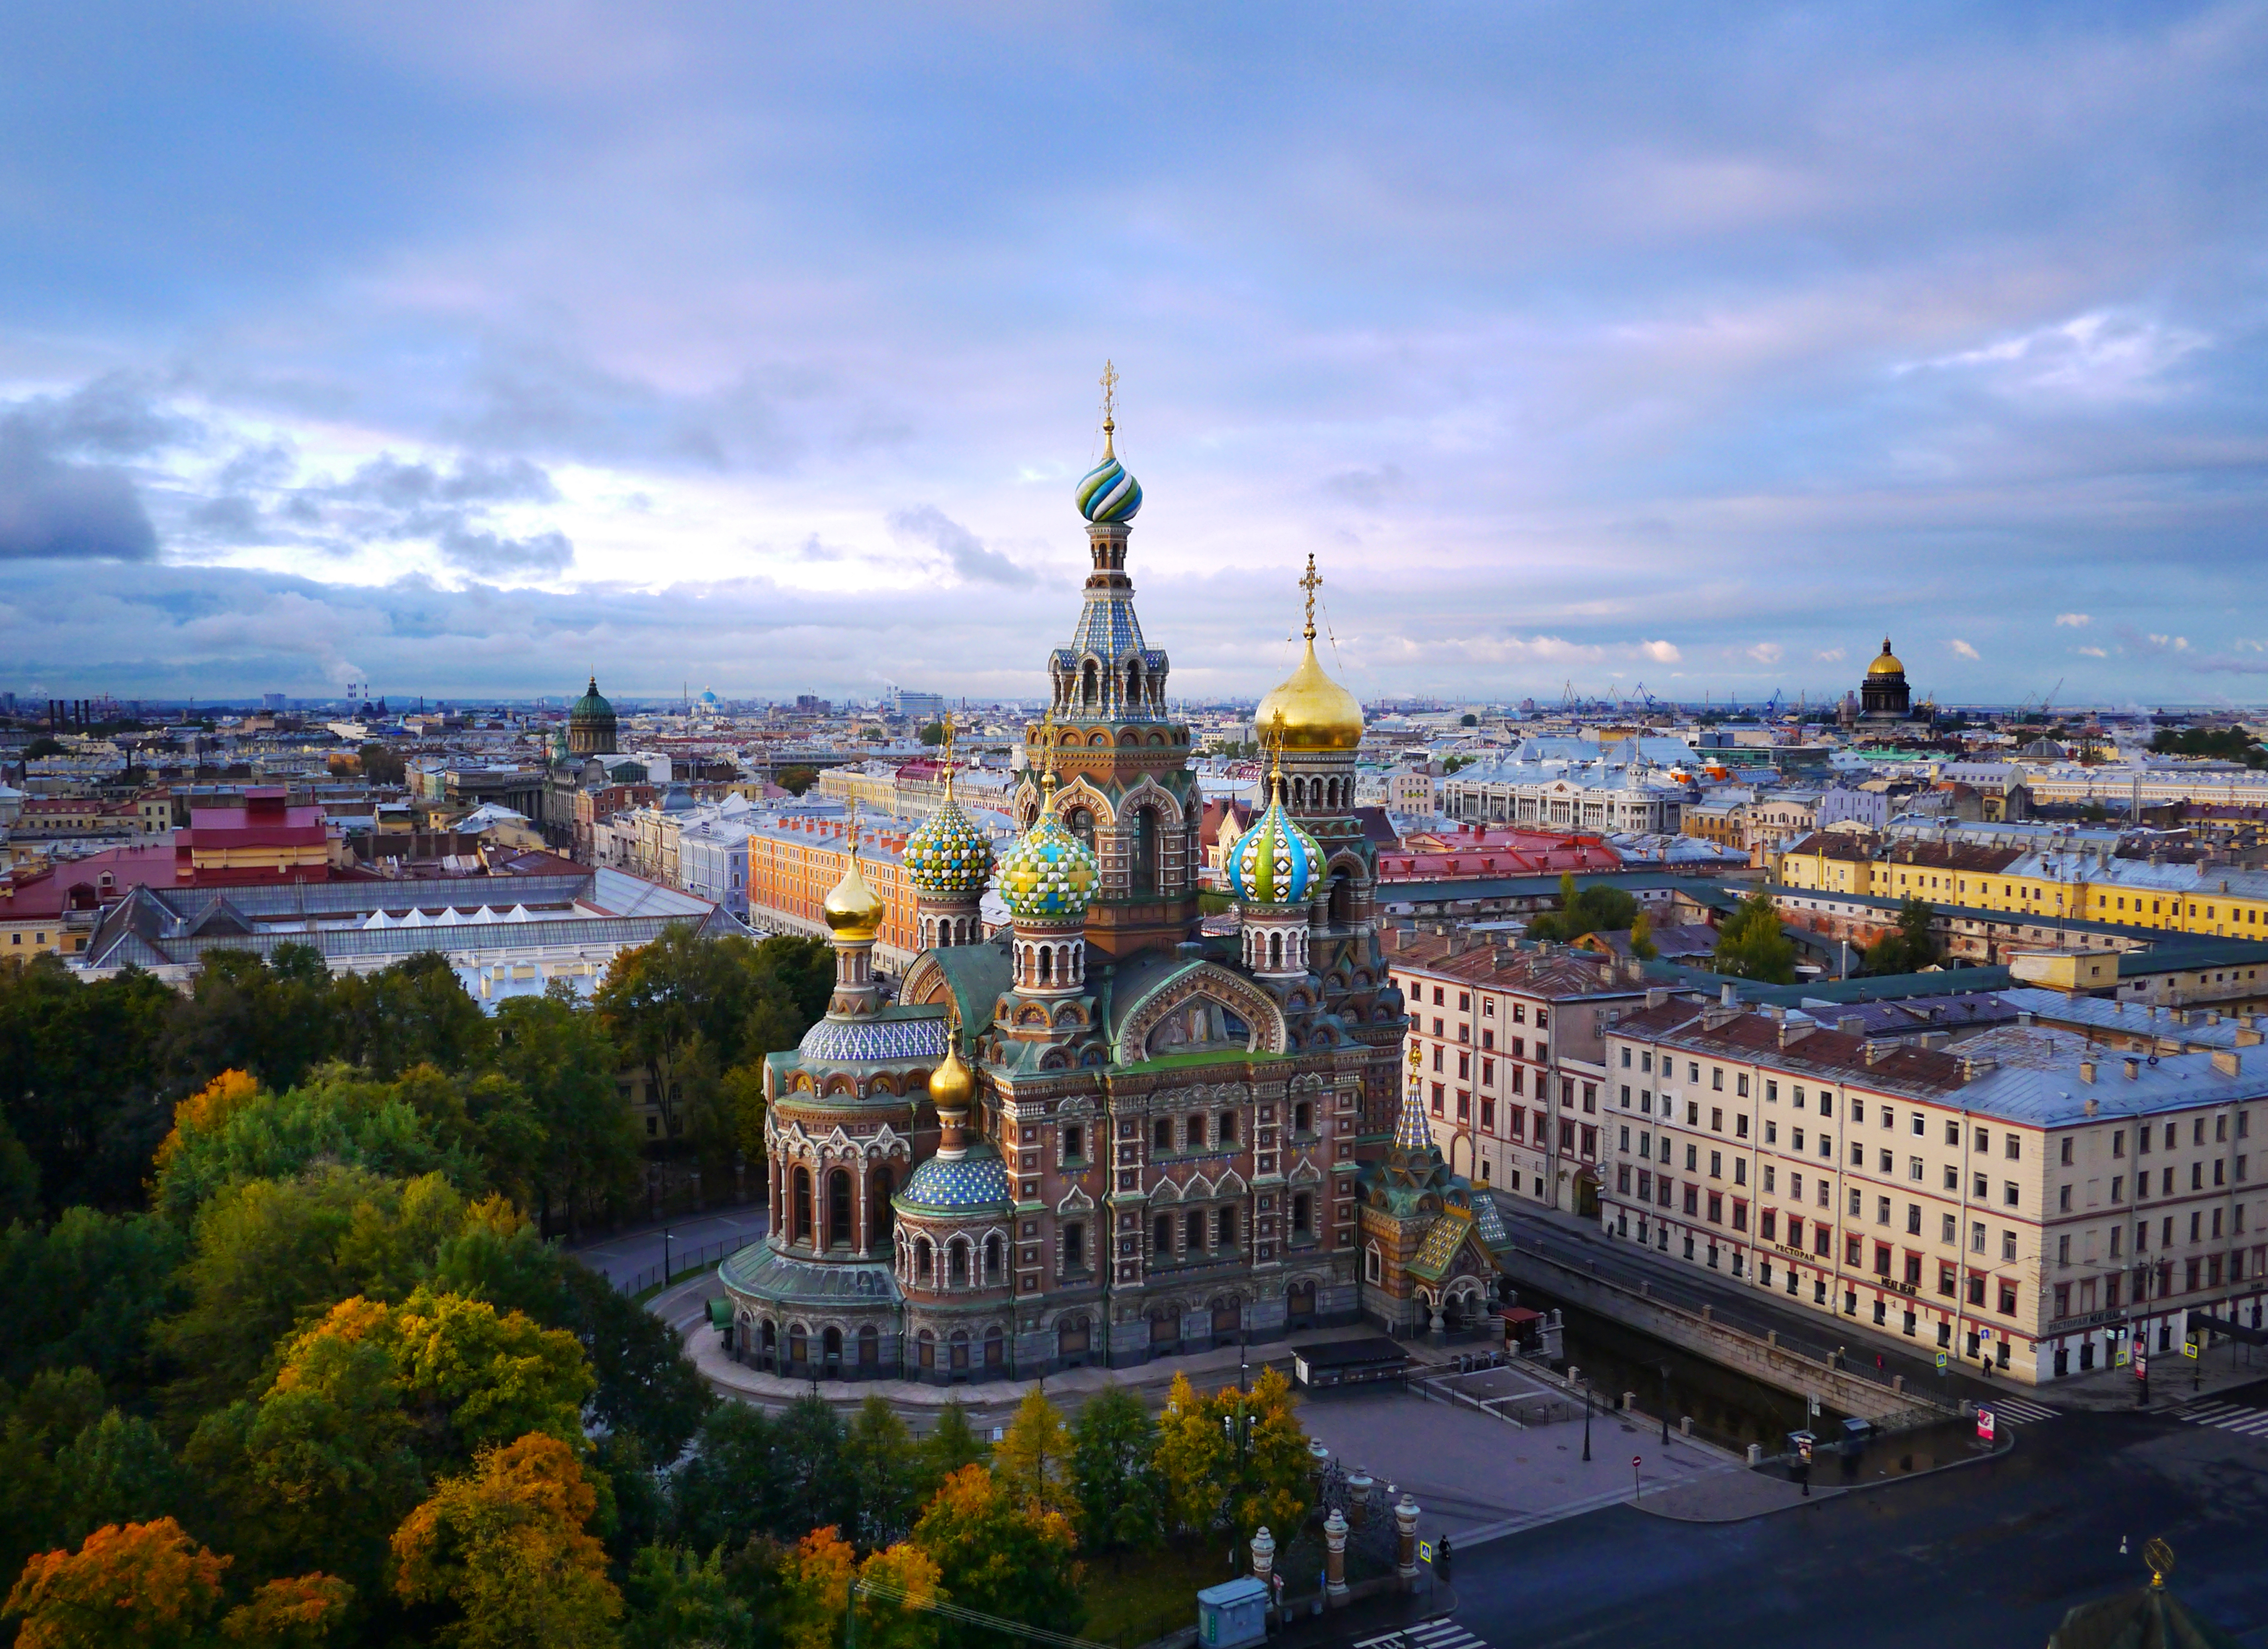 Cathedral on Spilled Blood